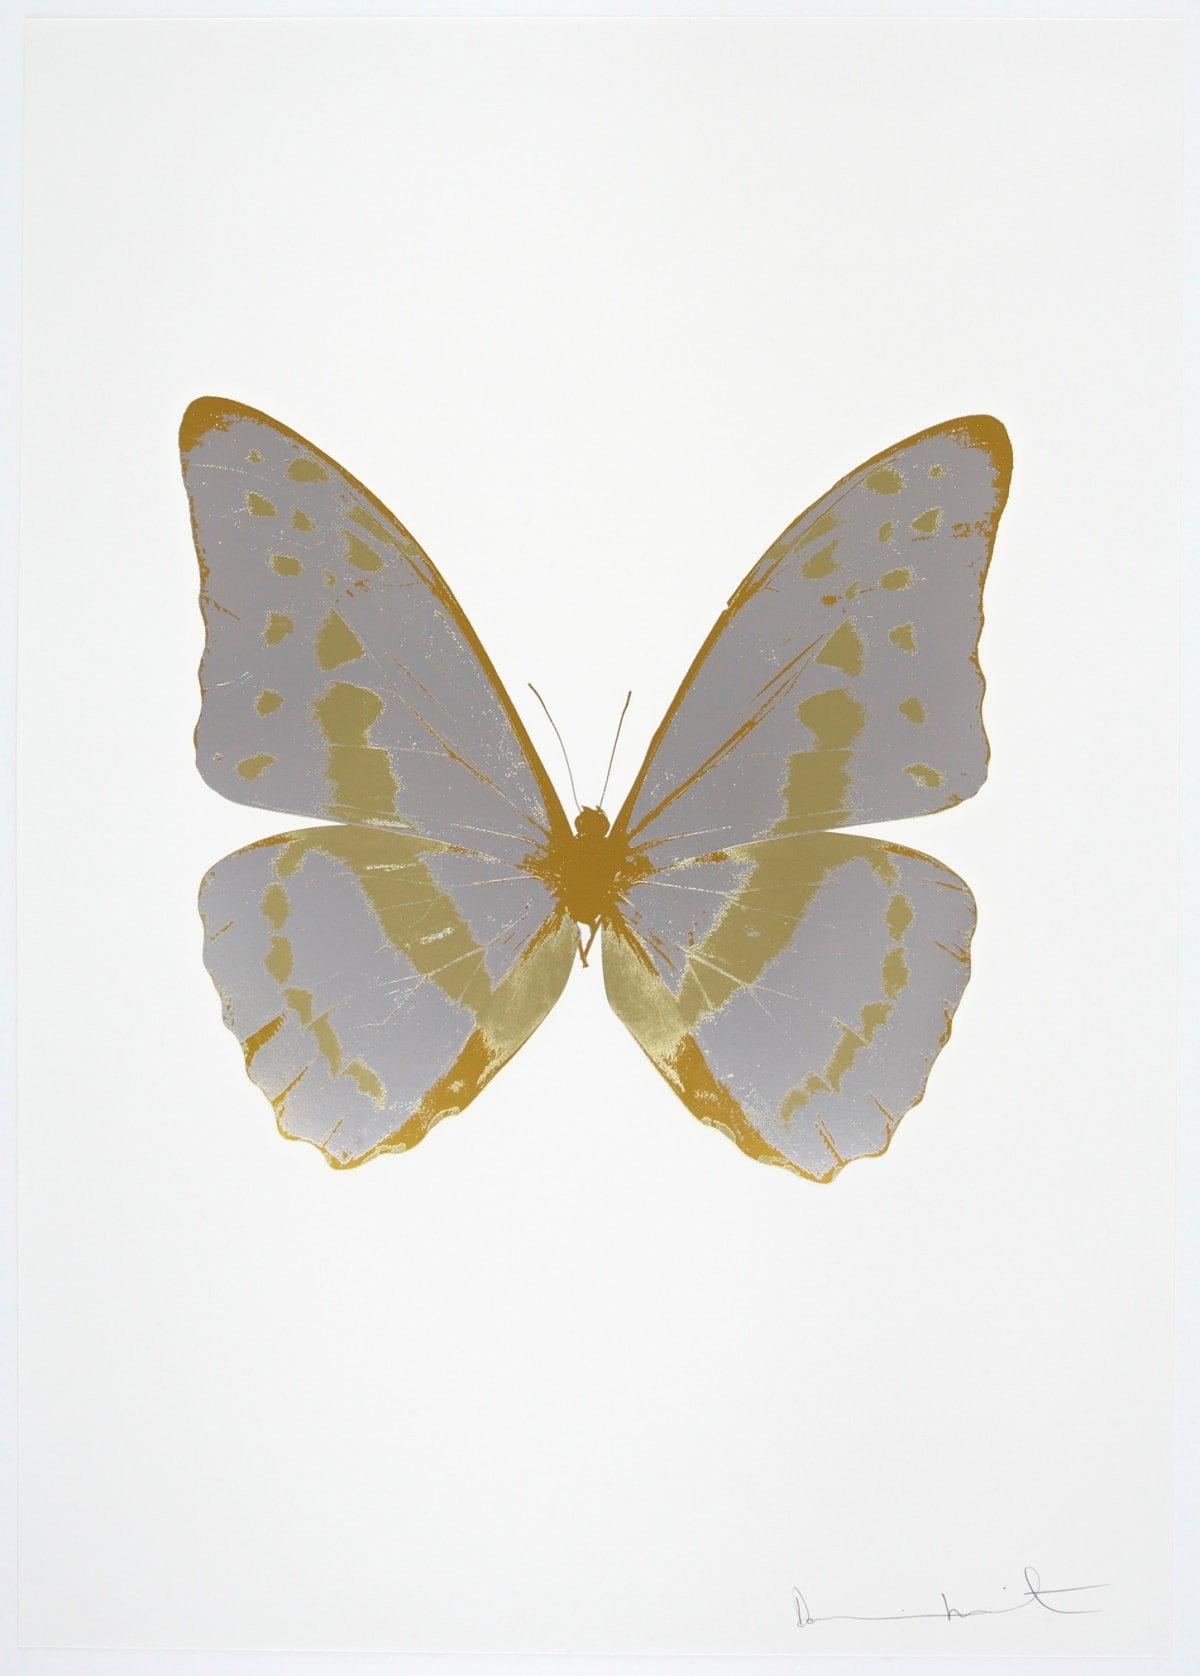 Damien Hirst The Souls III - Silver Gloss/Cool Gold/Luxury Gold, 2010 3 colour foil block on 300gsm Arches 88 archival paper. Signed and numbered. Published by Paul Stolper and Other Criteria 72 x 51cm OC7934 / 660-37 Edition of 15